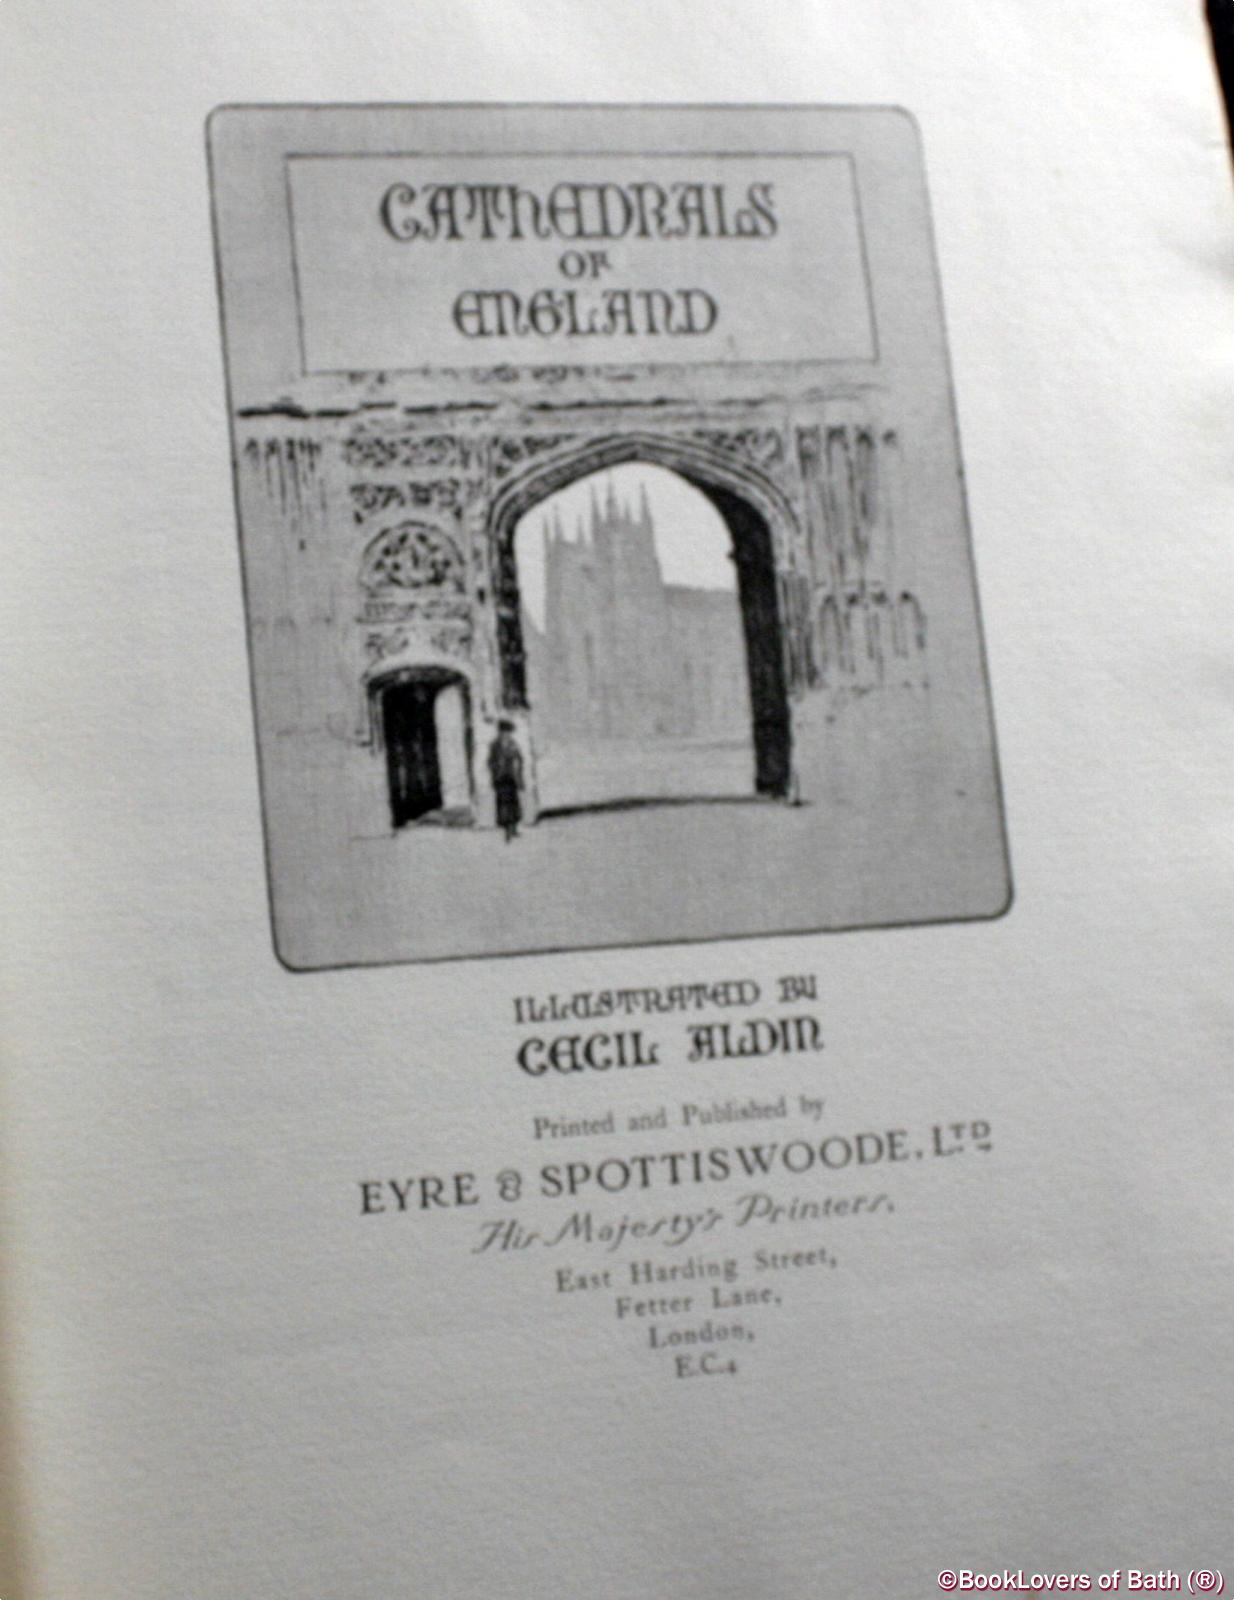 Cathedrals and Abbey Churches of England - Cecil [Charles Windsor] Aldin